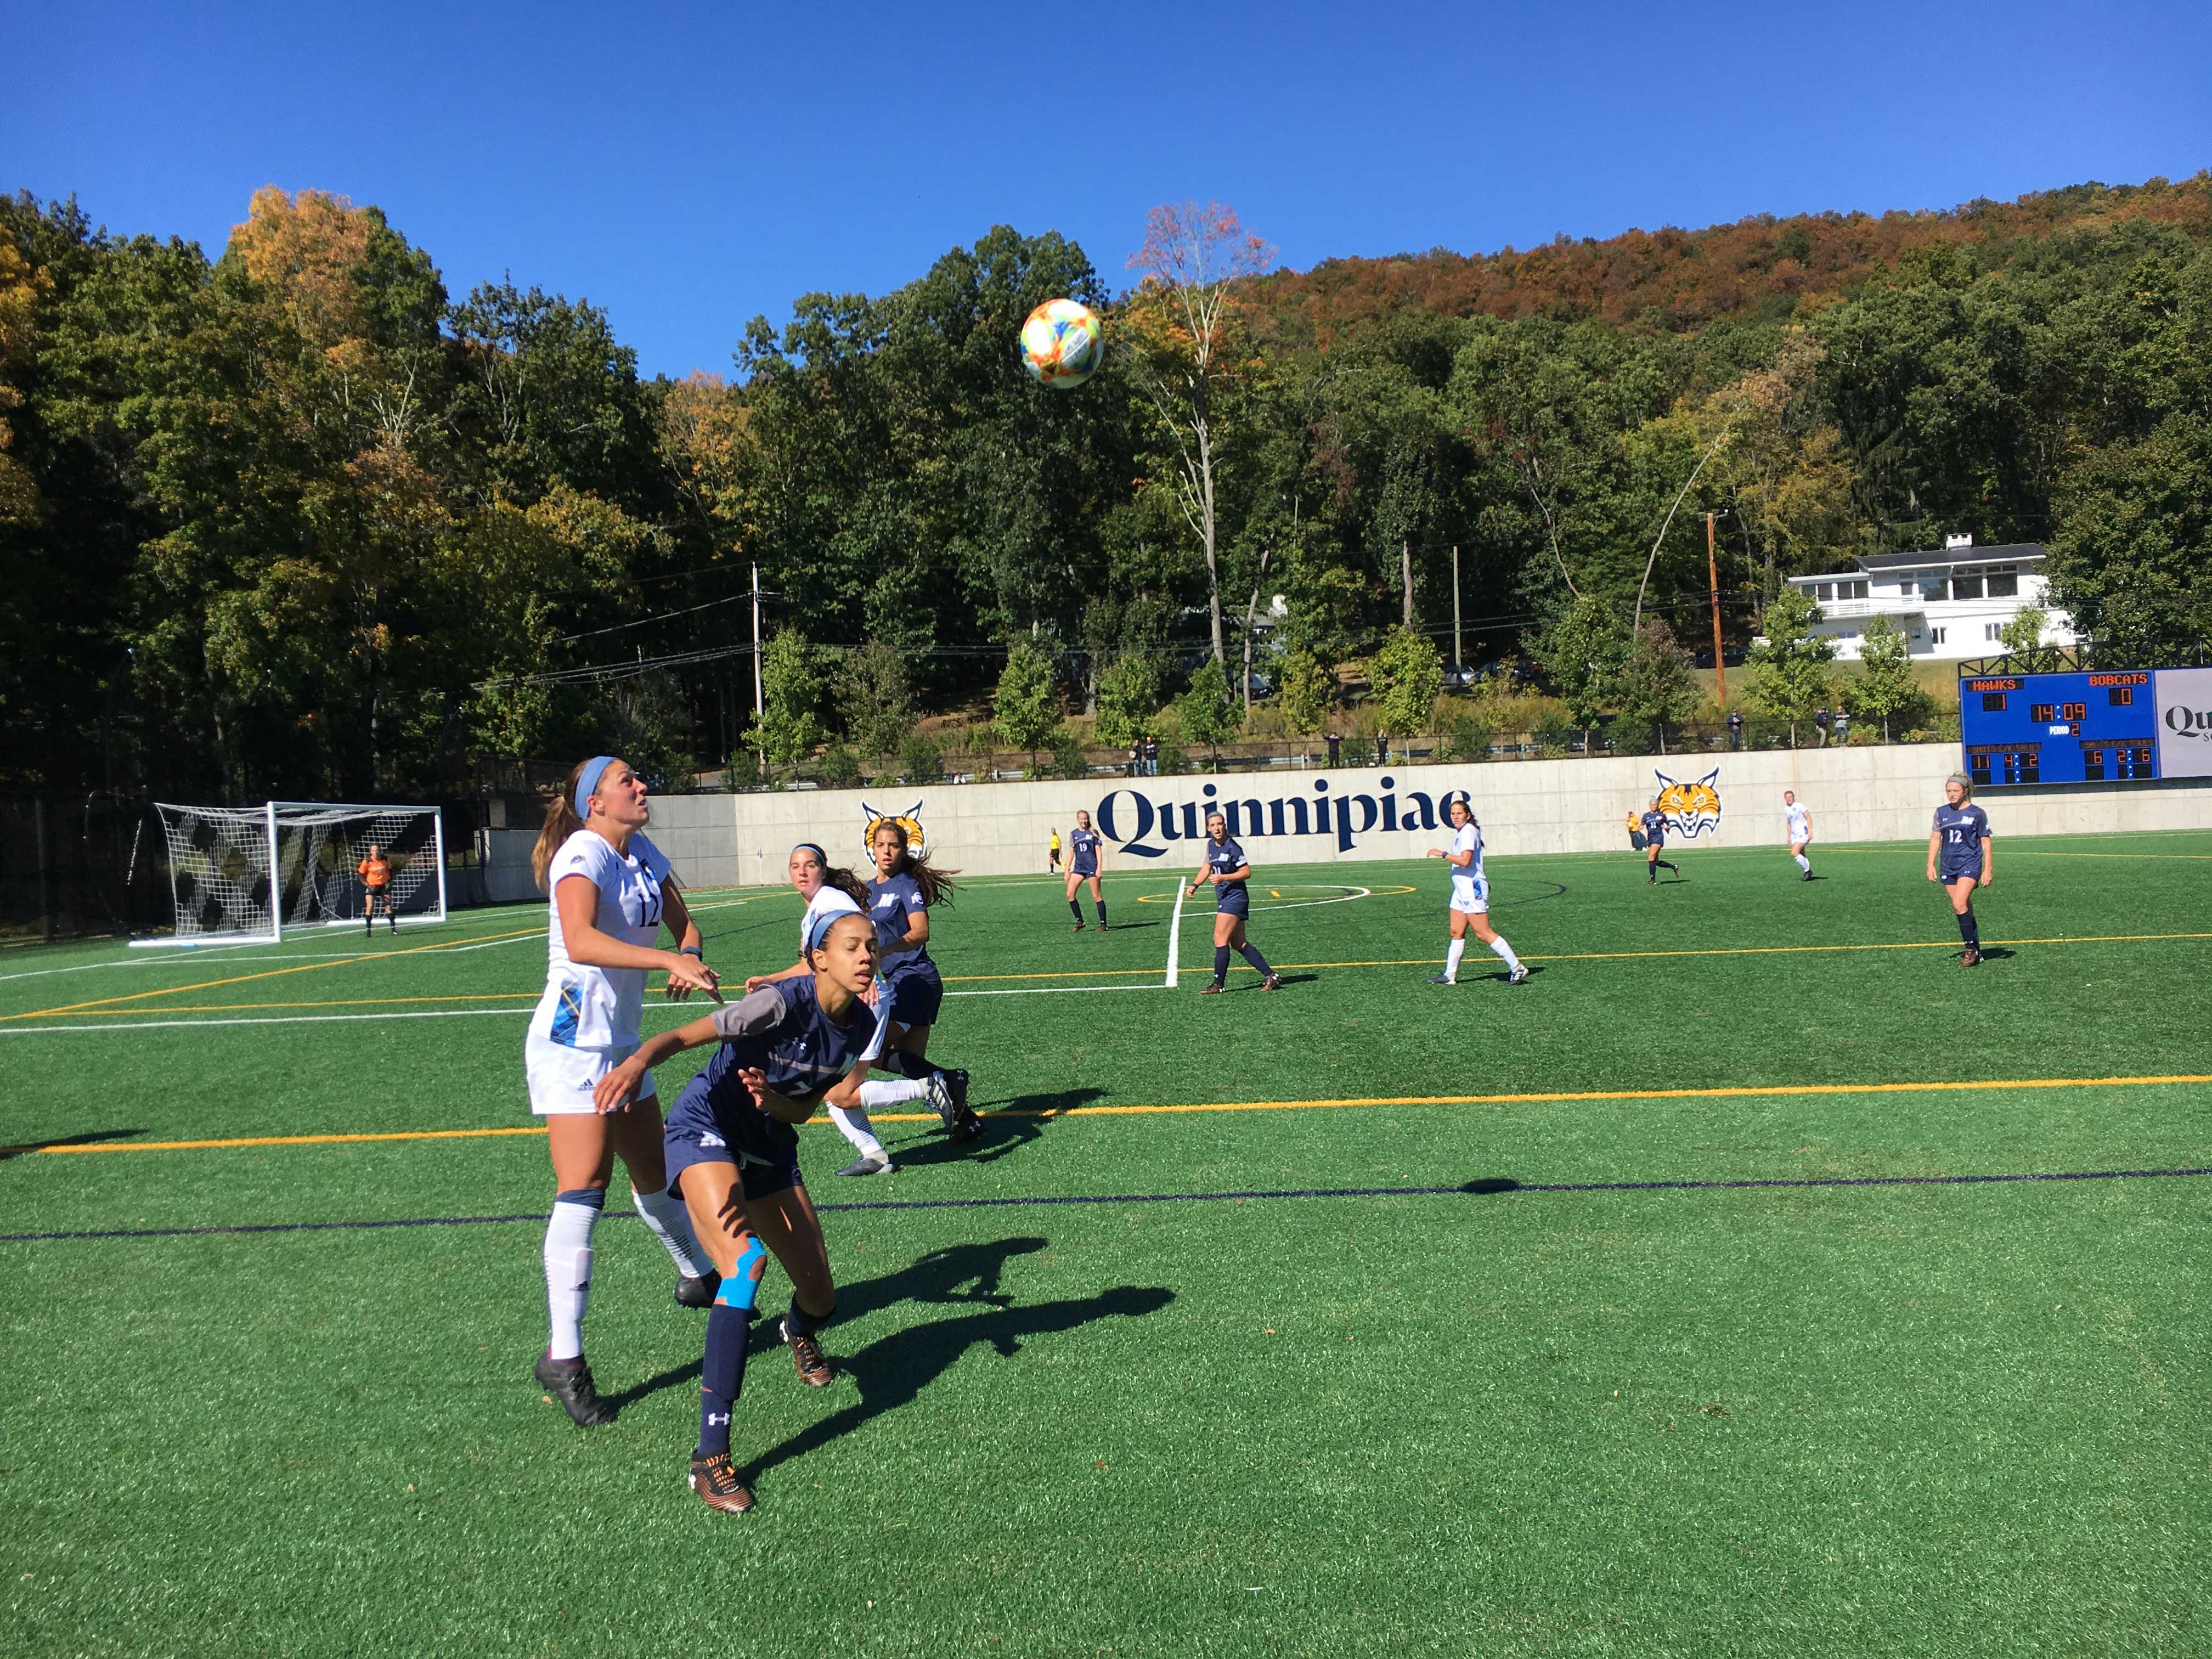 Quinnipiac suffers third MAAC loss of the season